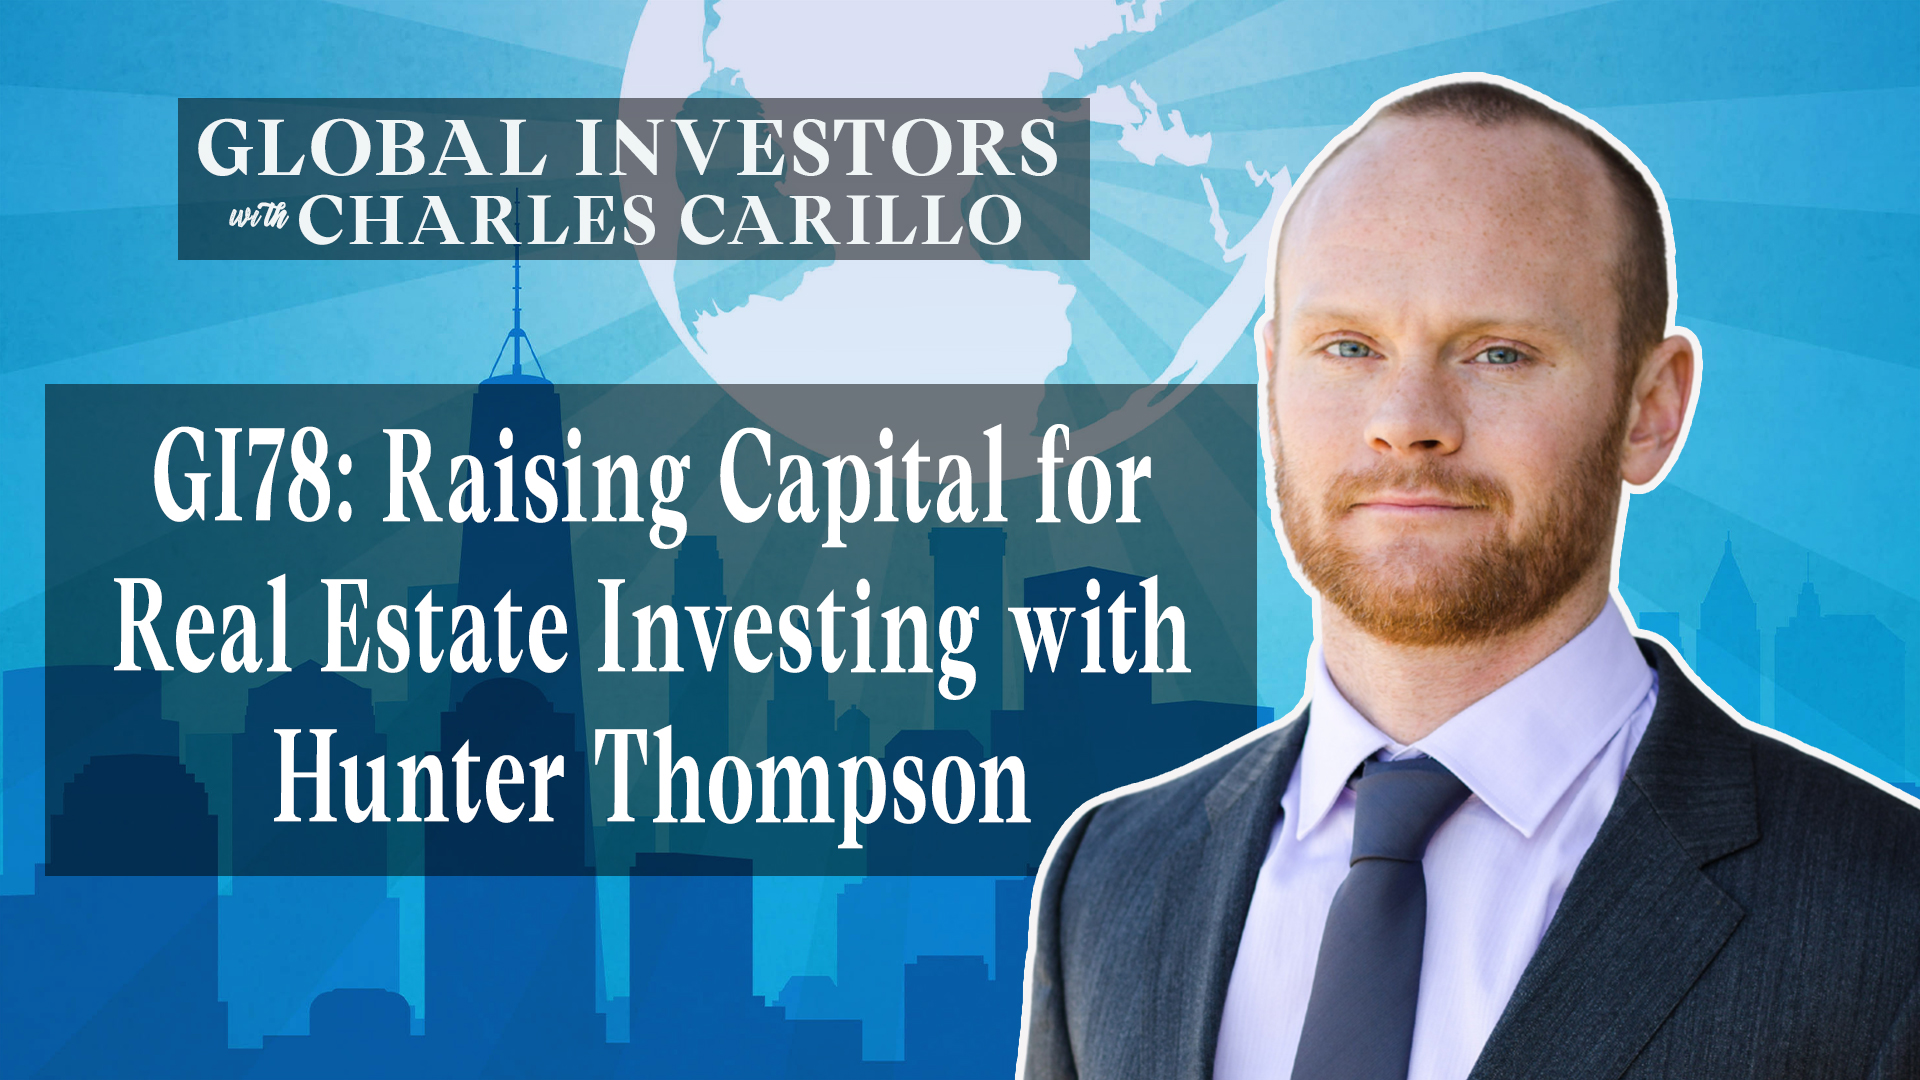 GI78: Raising Capital for Real Estate Investing with Hunter Thompson